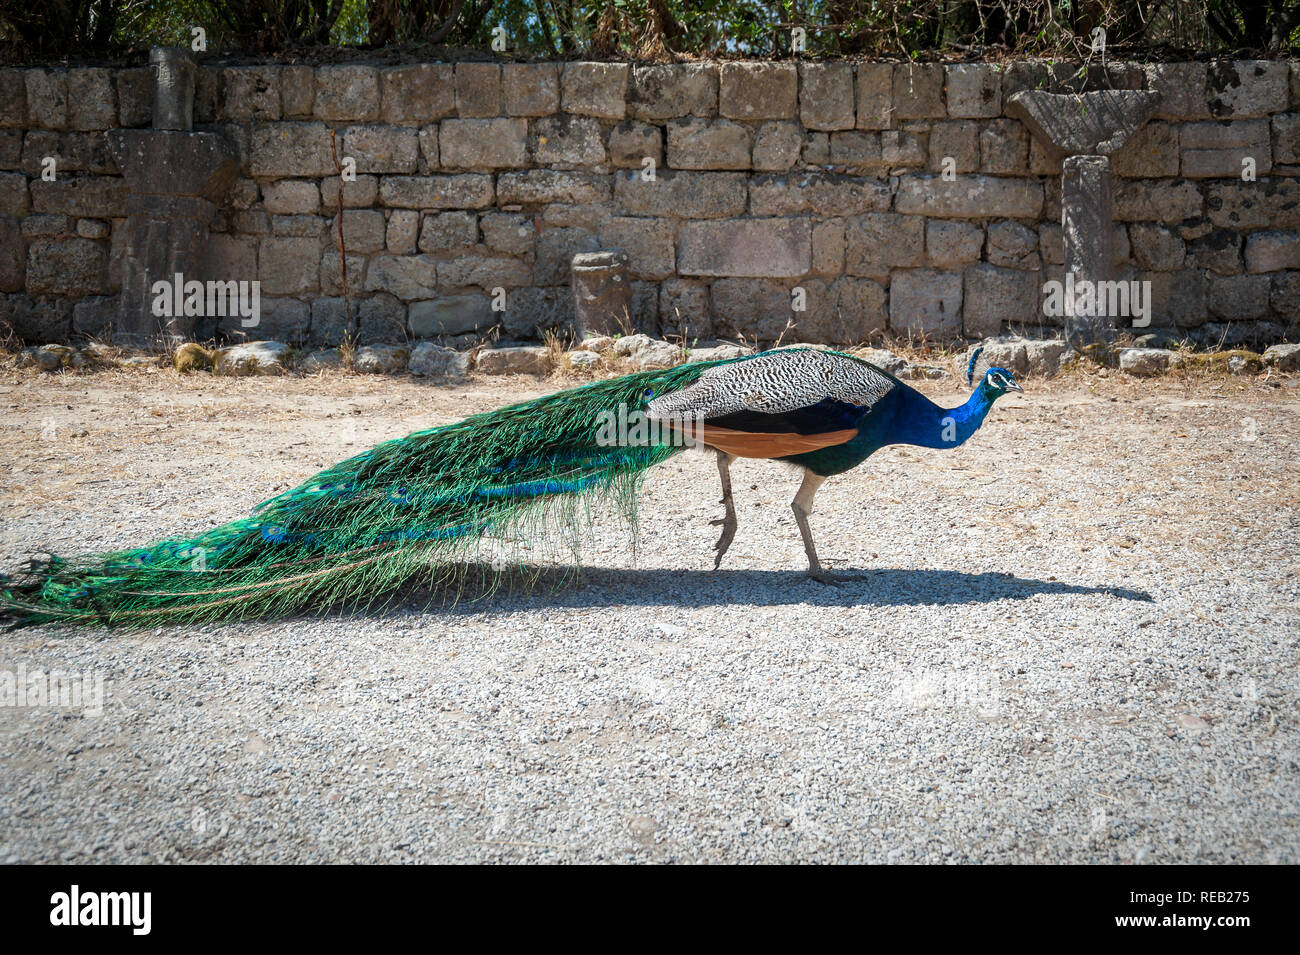 Peacock strolling along stone wall during summer day. Monastery of Filerimos gardens and surroundings apparently become a natural habitat for peacock. Stock Photo